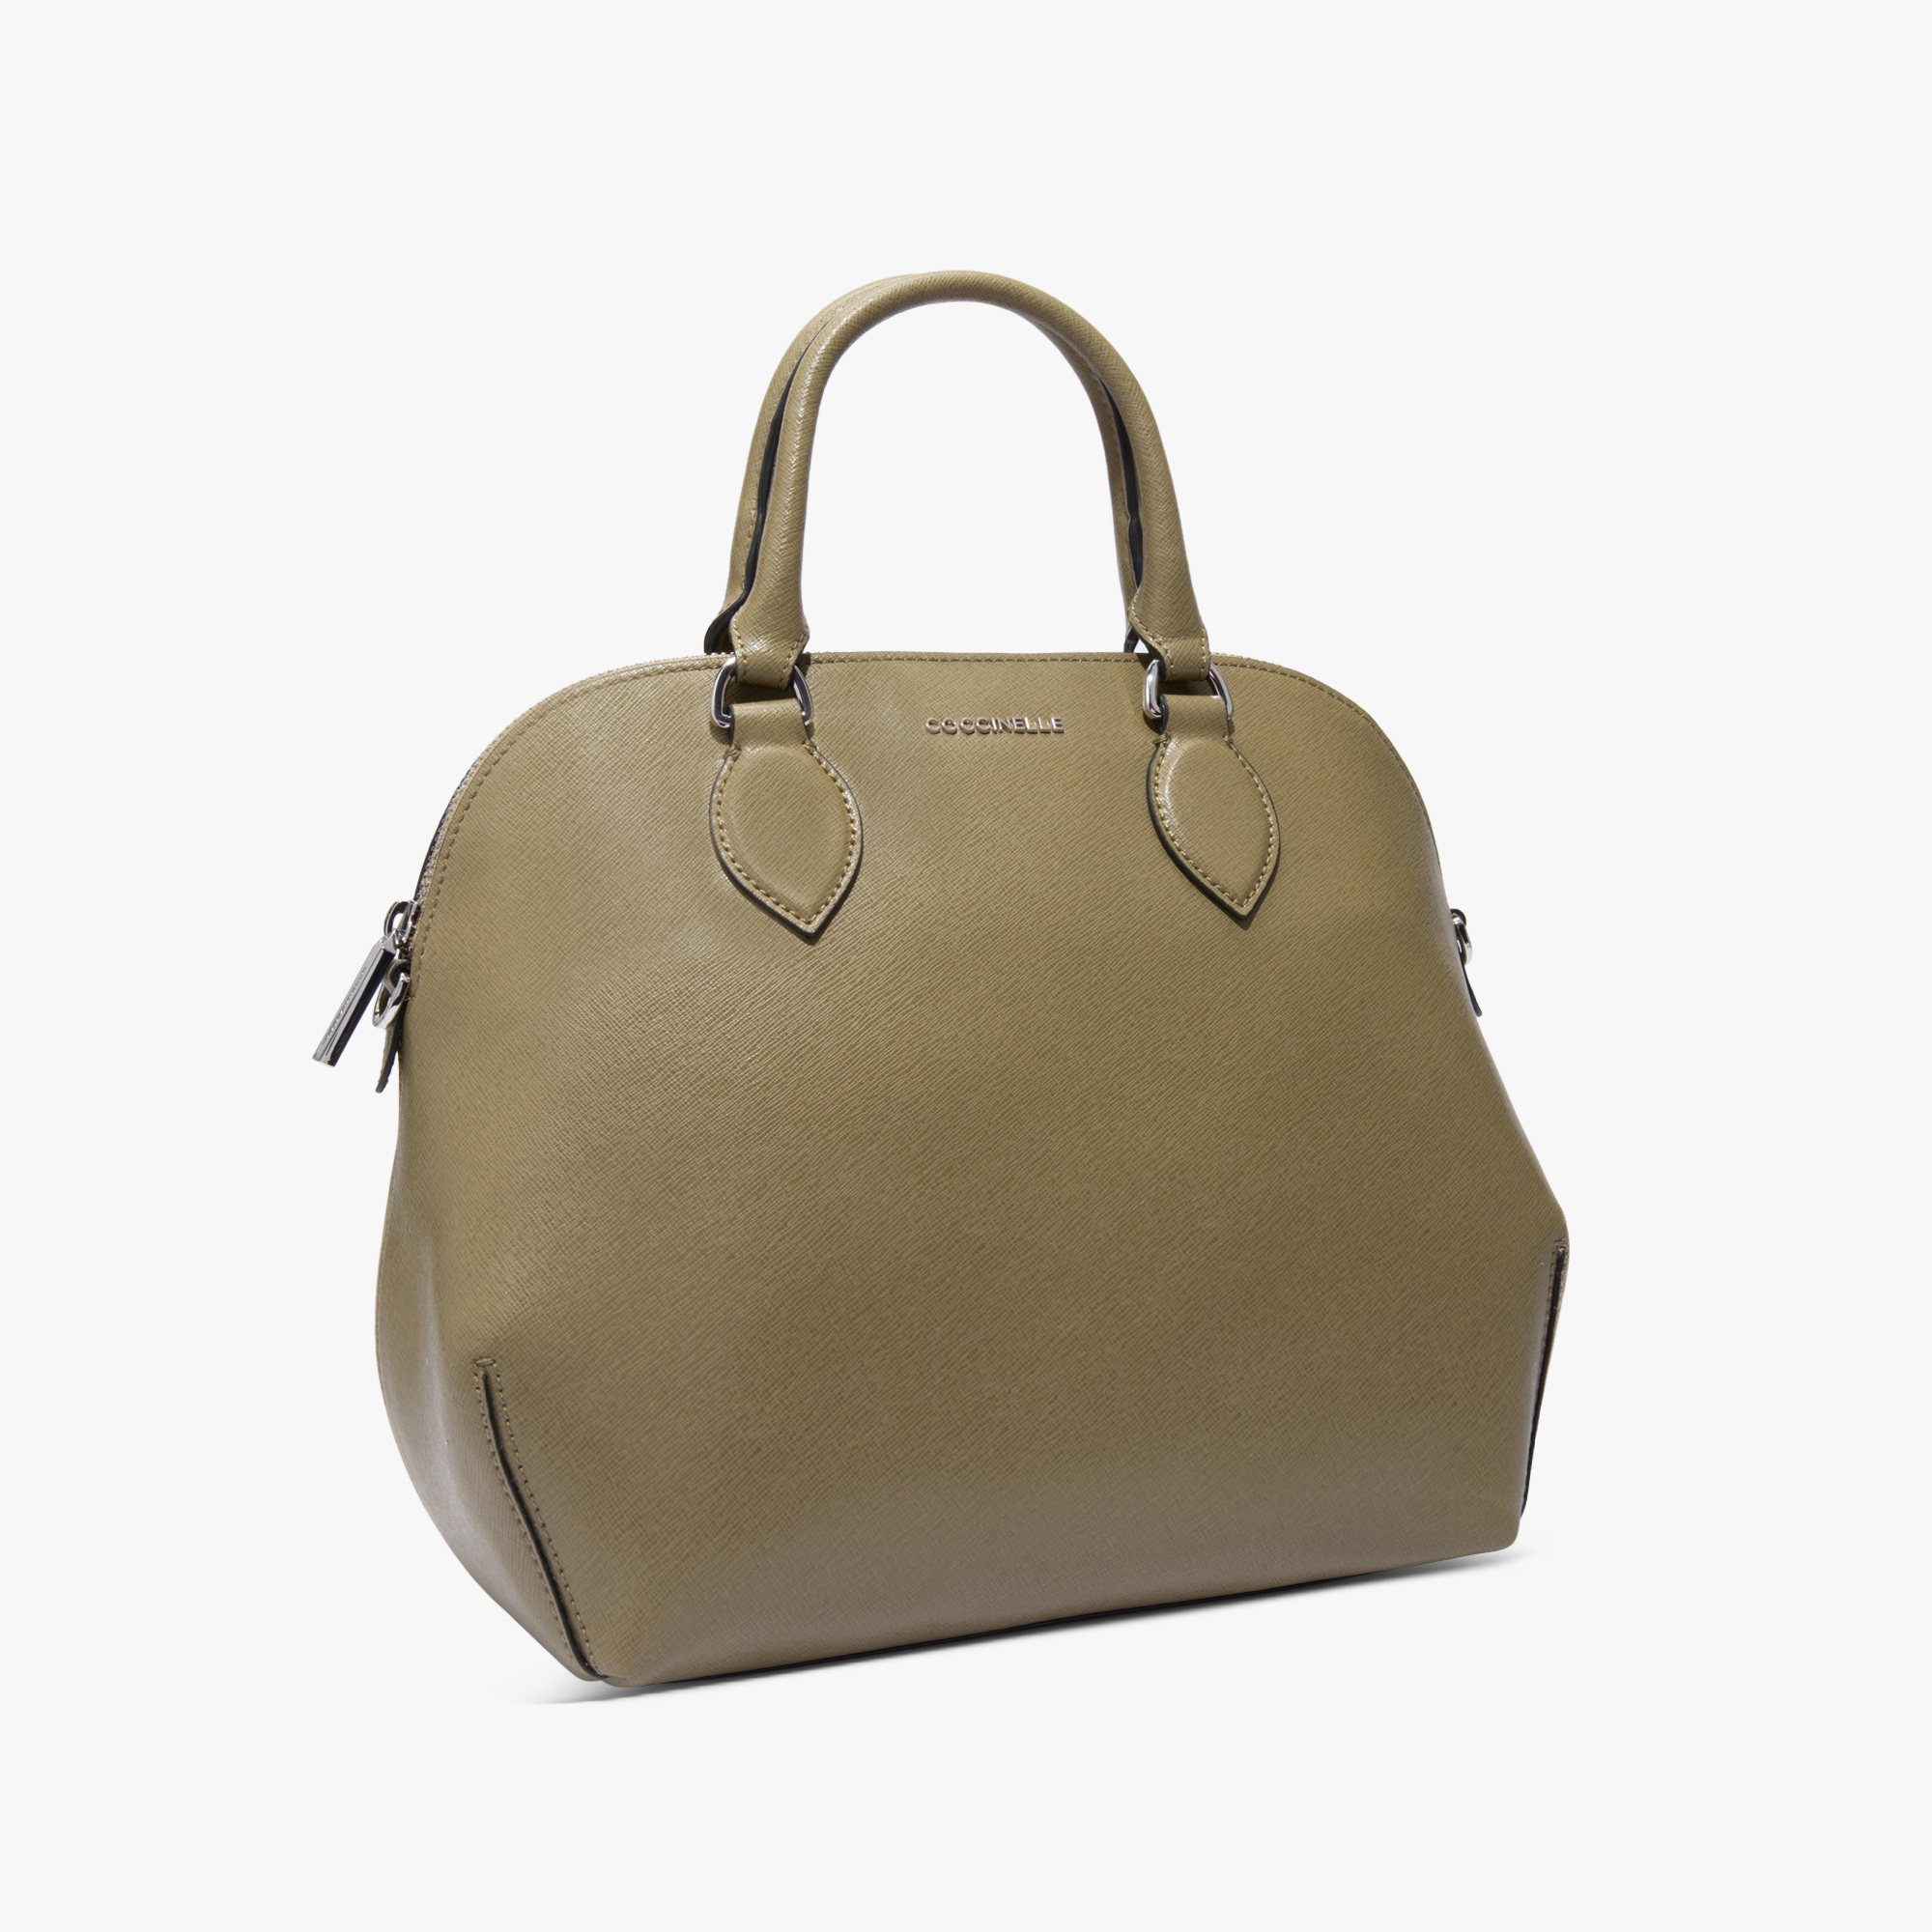 Yamilet Saffiano leather handbag